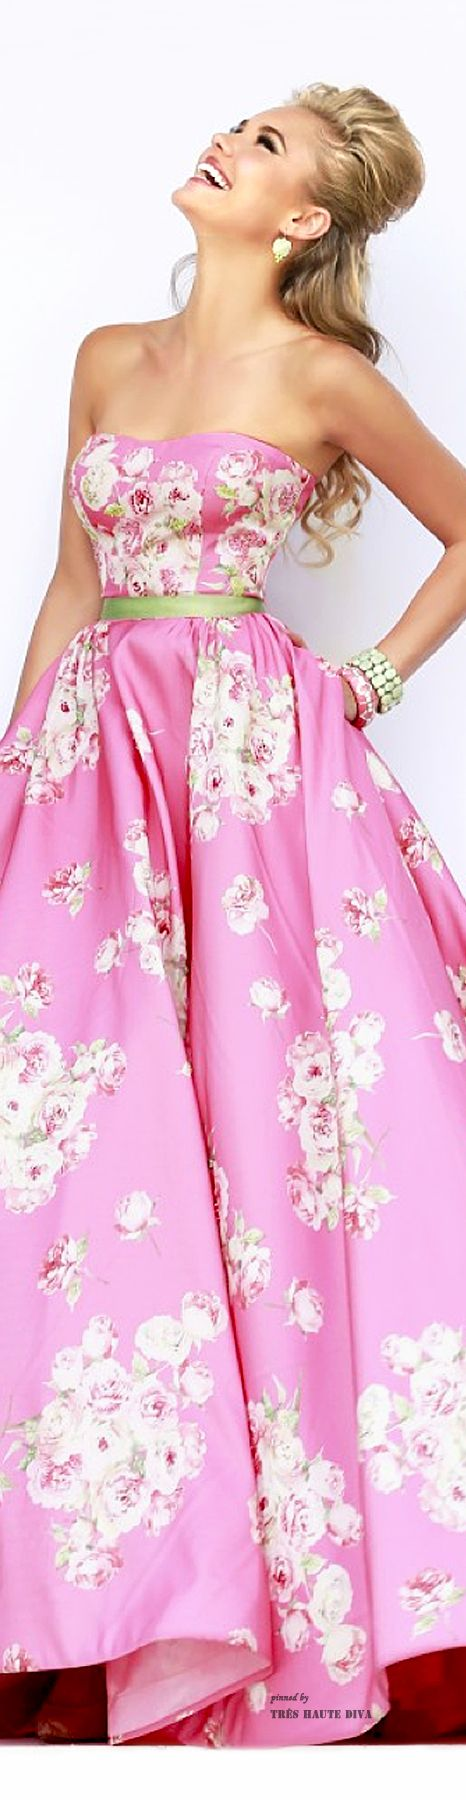 Sherri Hill ~ Spring Pink Floral Maxi, 2015